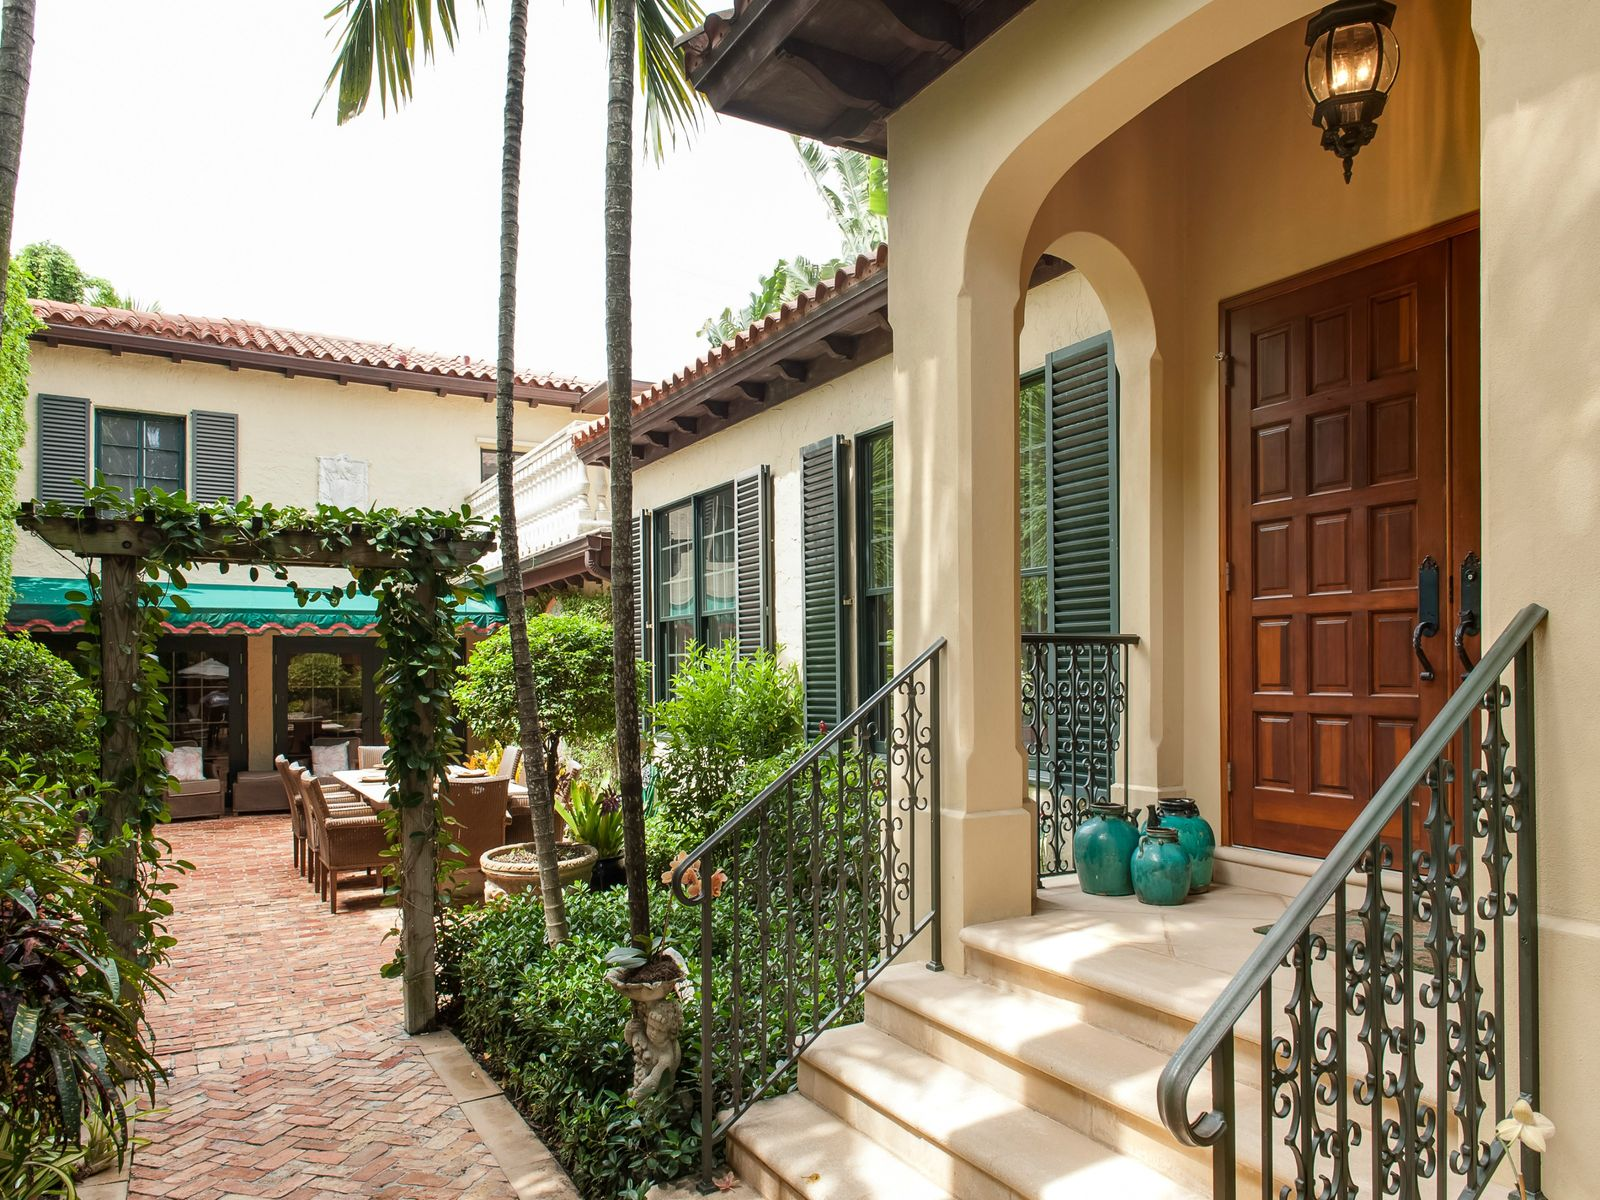 Sophisticated In-Town Villa, Palm Beach FL Single Family Home - Palm Beach Real Estate